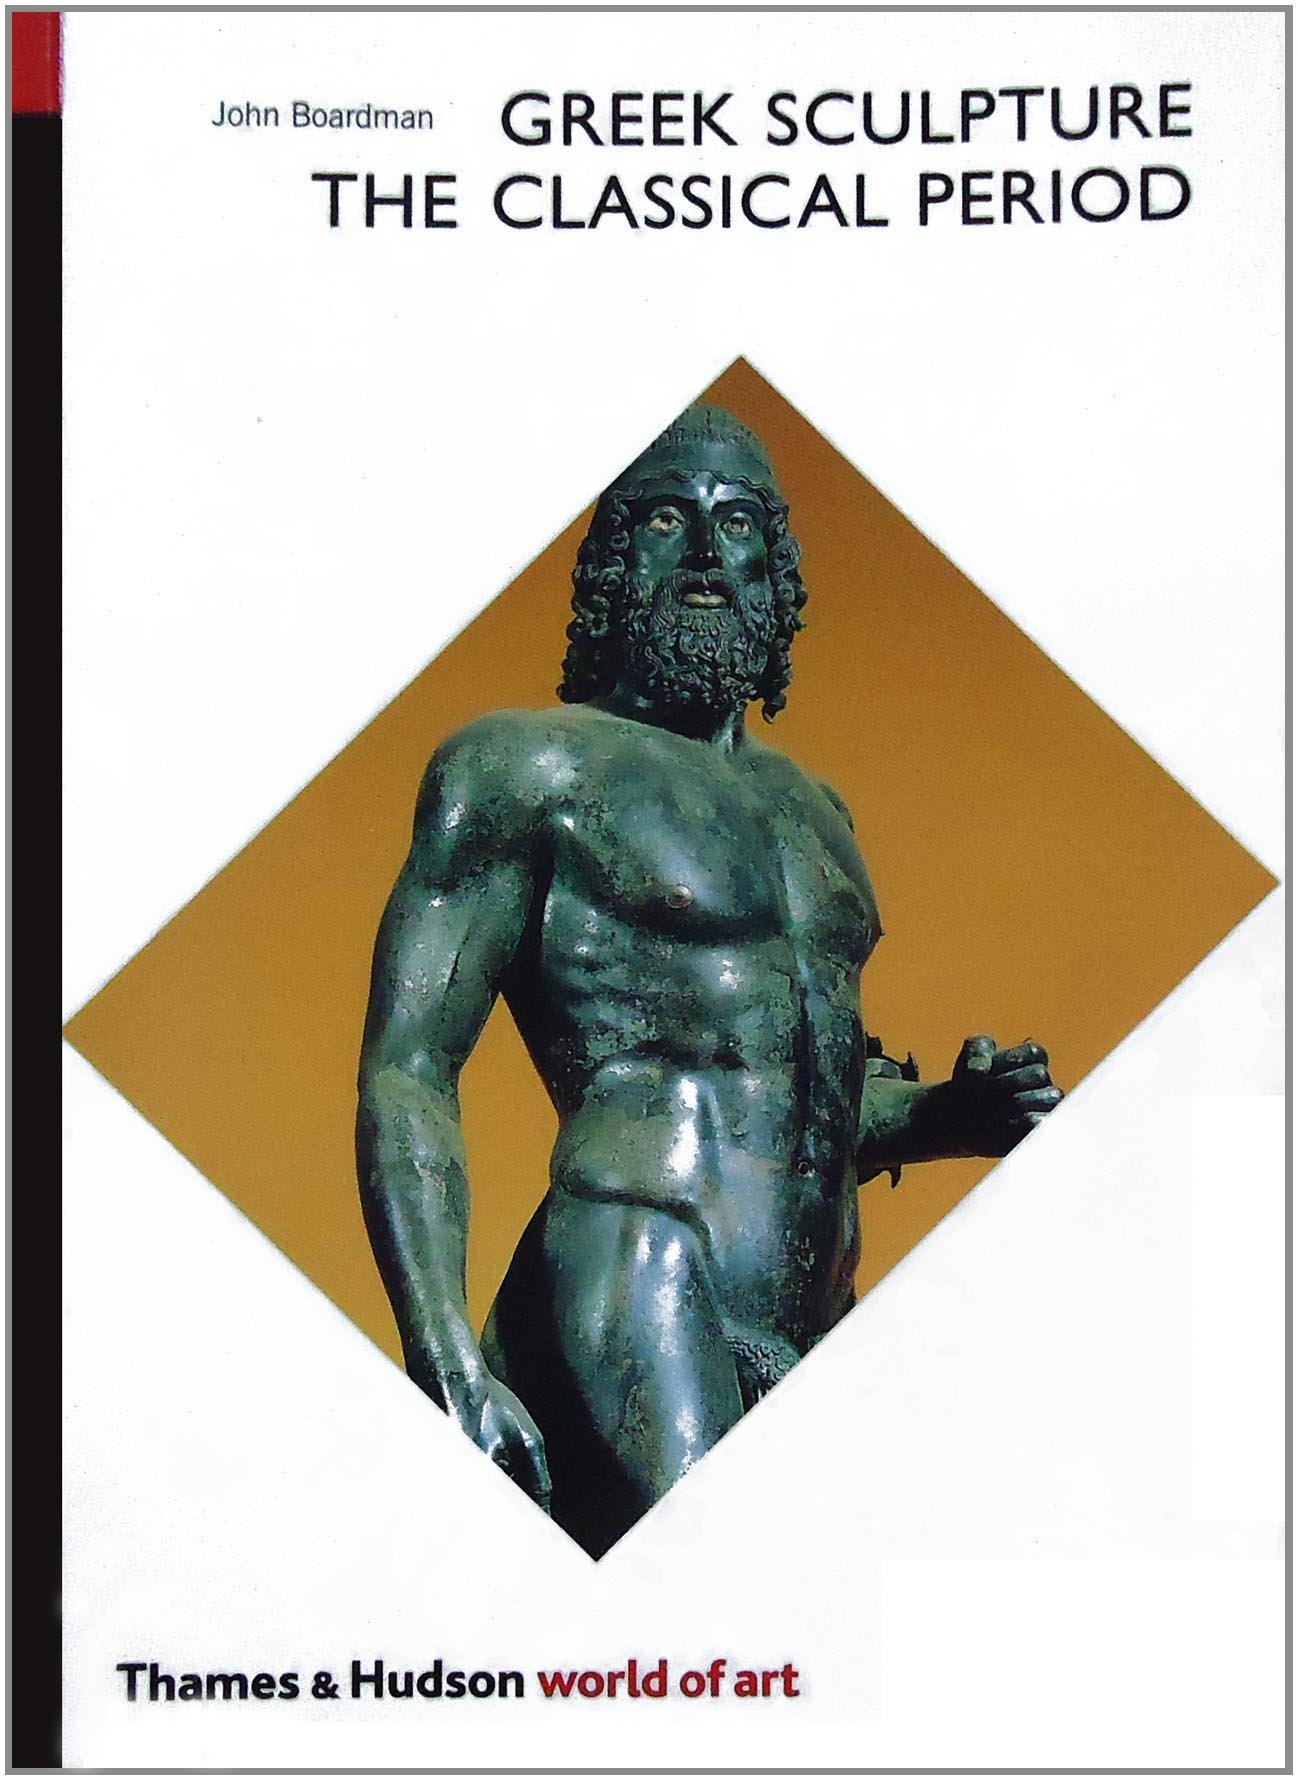 Amazon.com: Greek Sculpture: The Classical Period, a Handbook (World of Art)  (9780500201985): John Boardman: Books